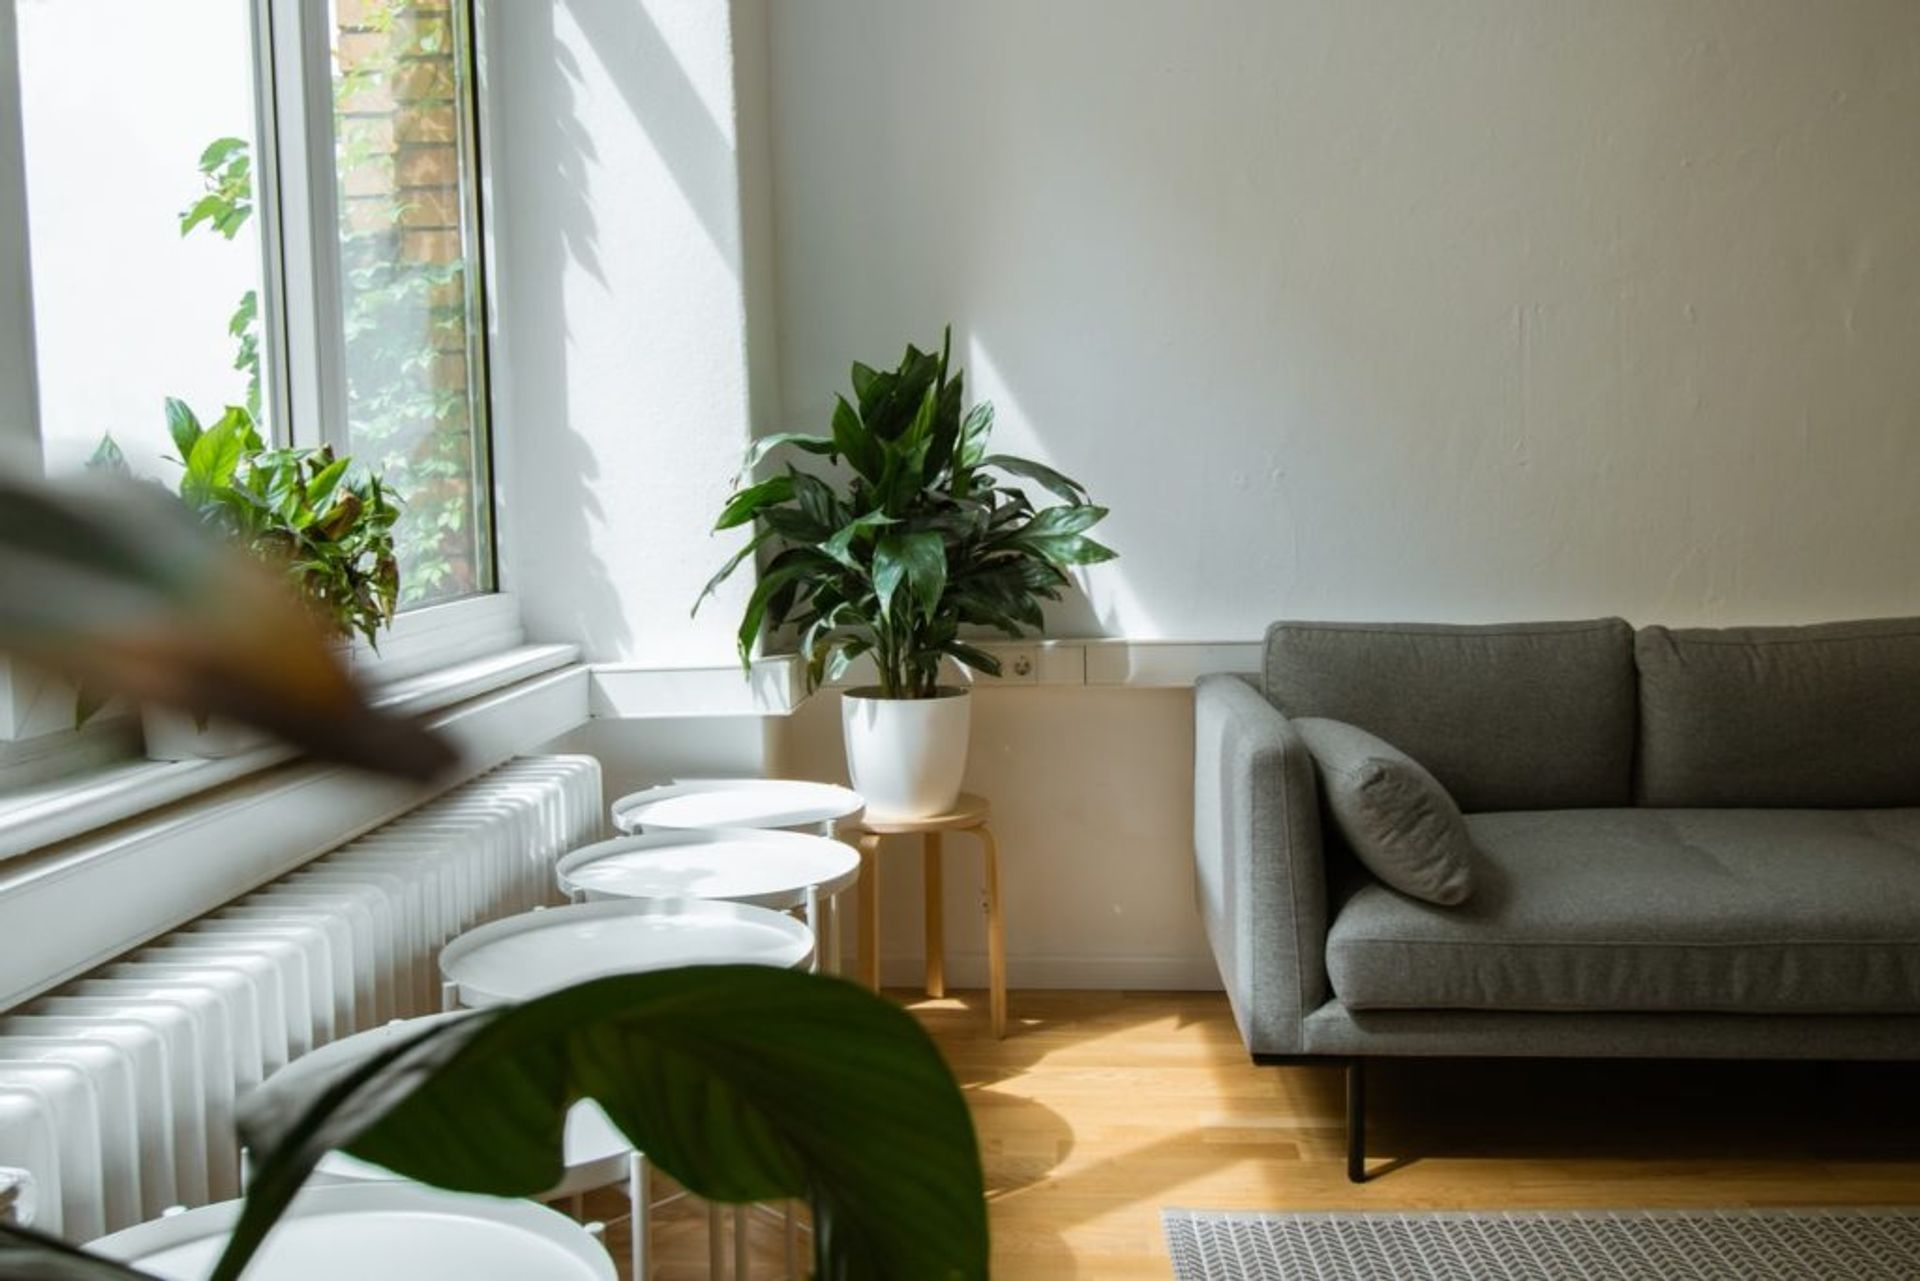 A grey sofa and plants beside a window.